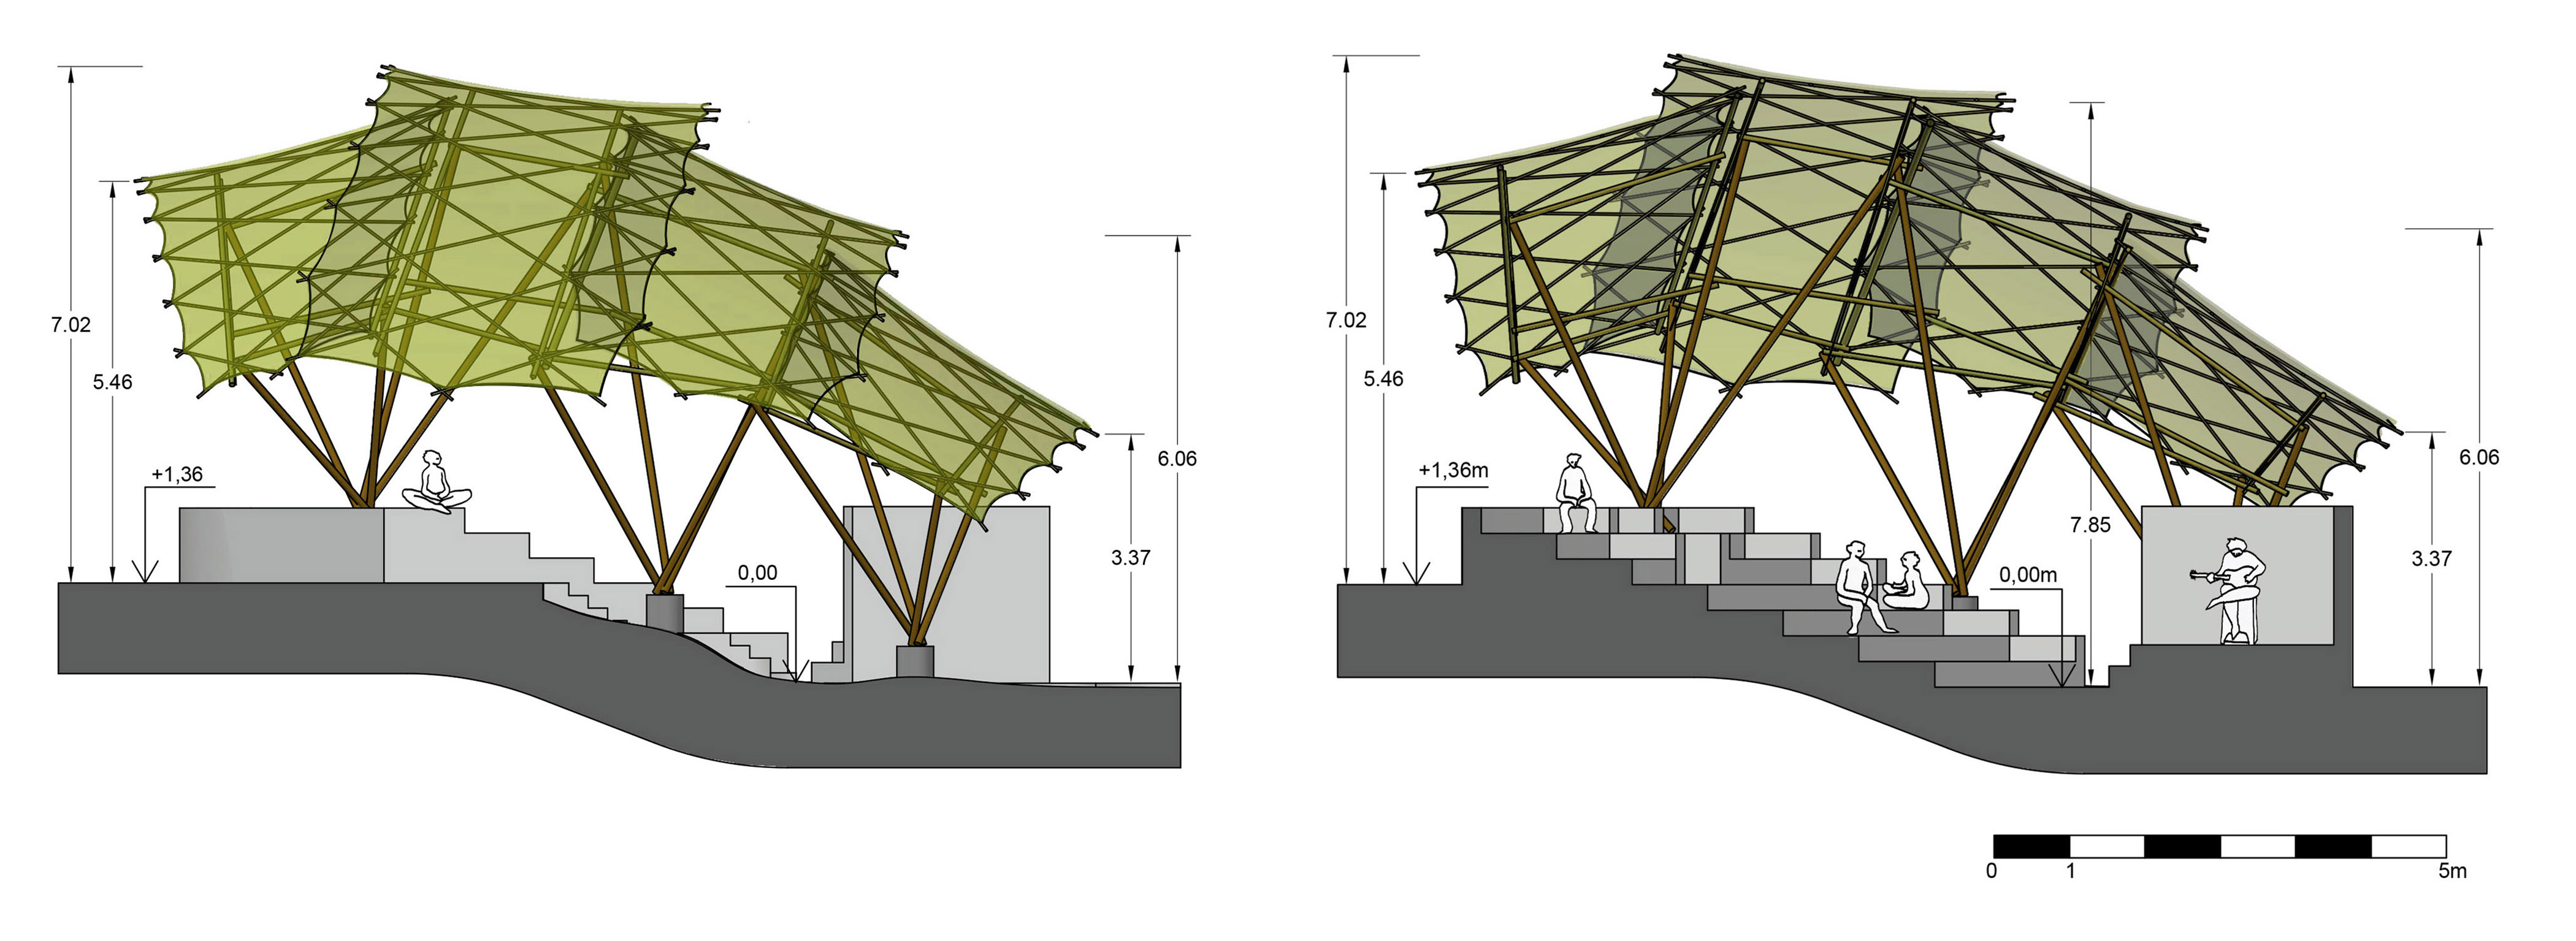 Bamboo-and-textile-space-structure-dome-2.jpg